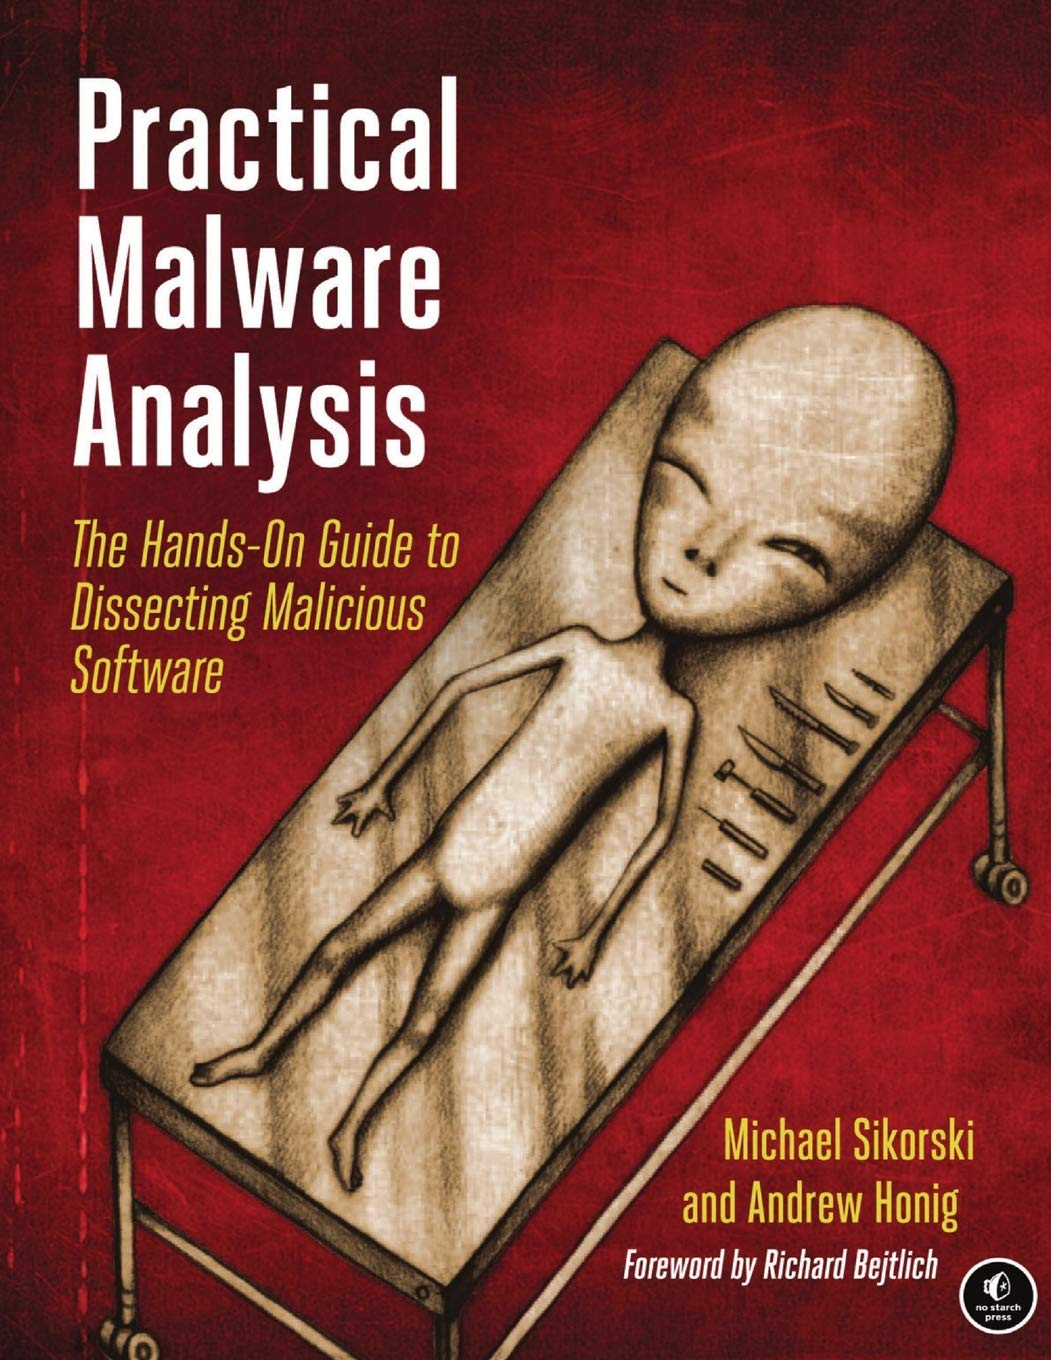 Practical Malware Analysis: The Hands-On Guide to Dissecting Malicious Software by No Starch Press